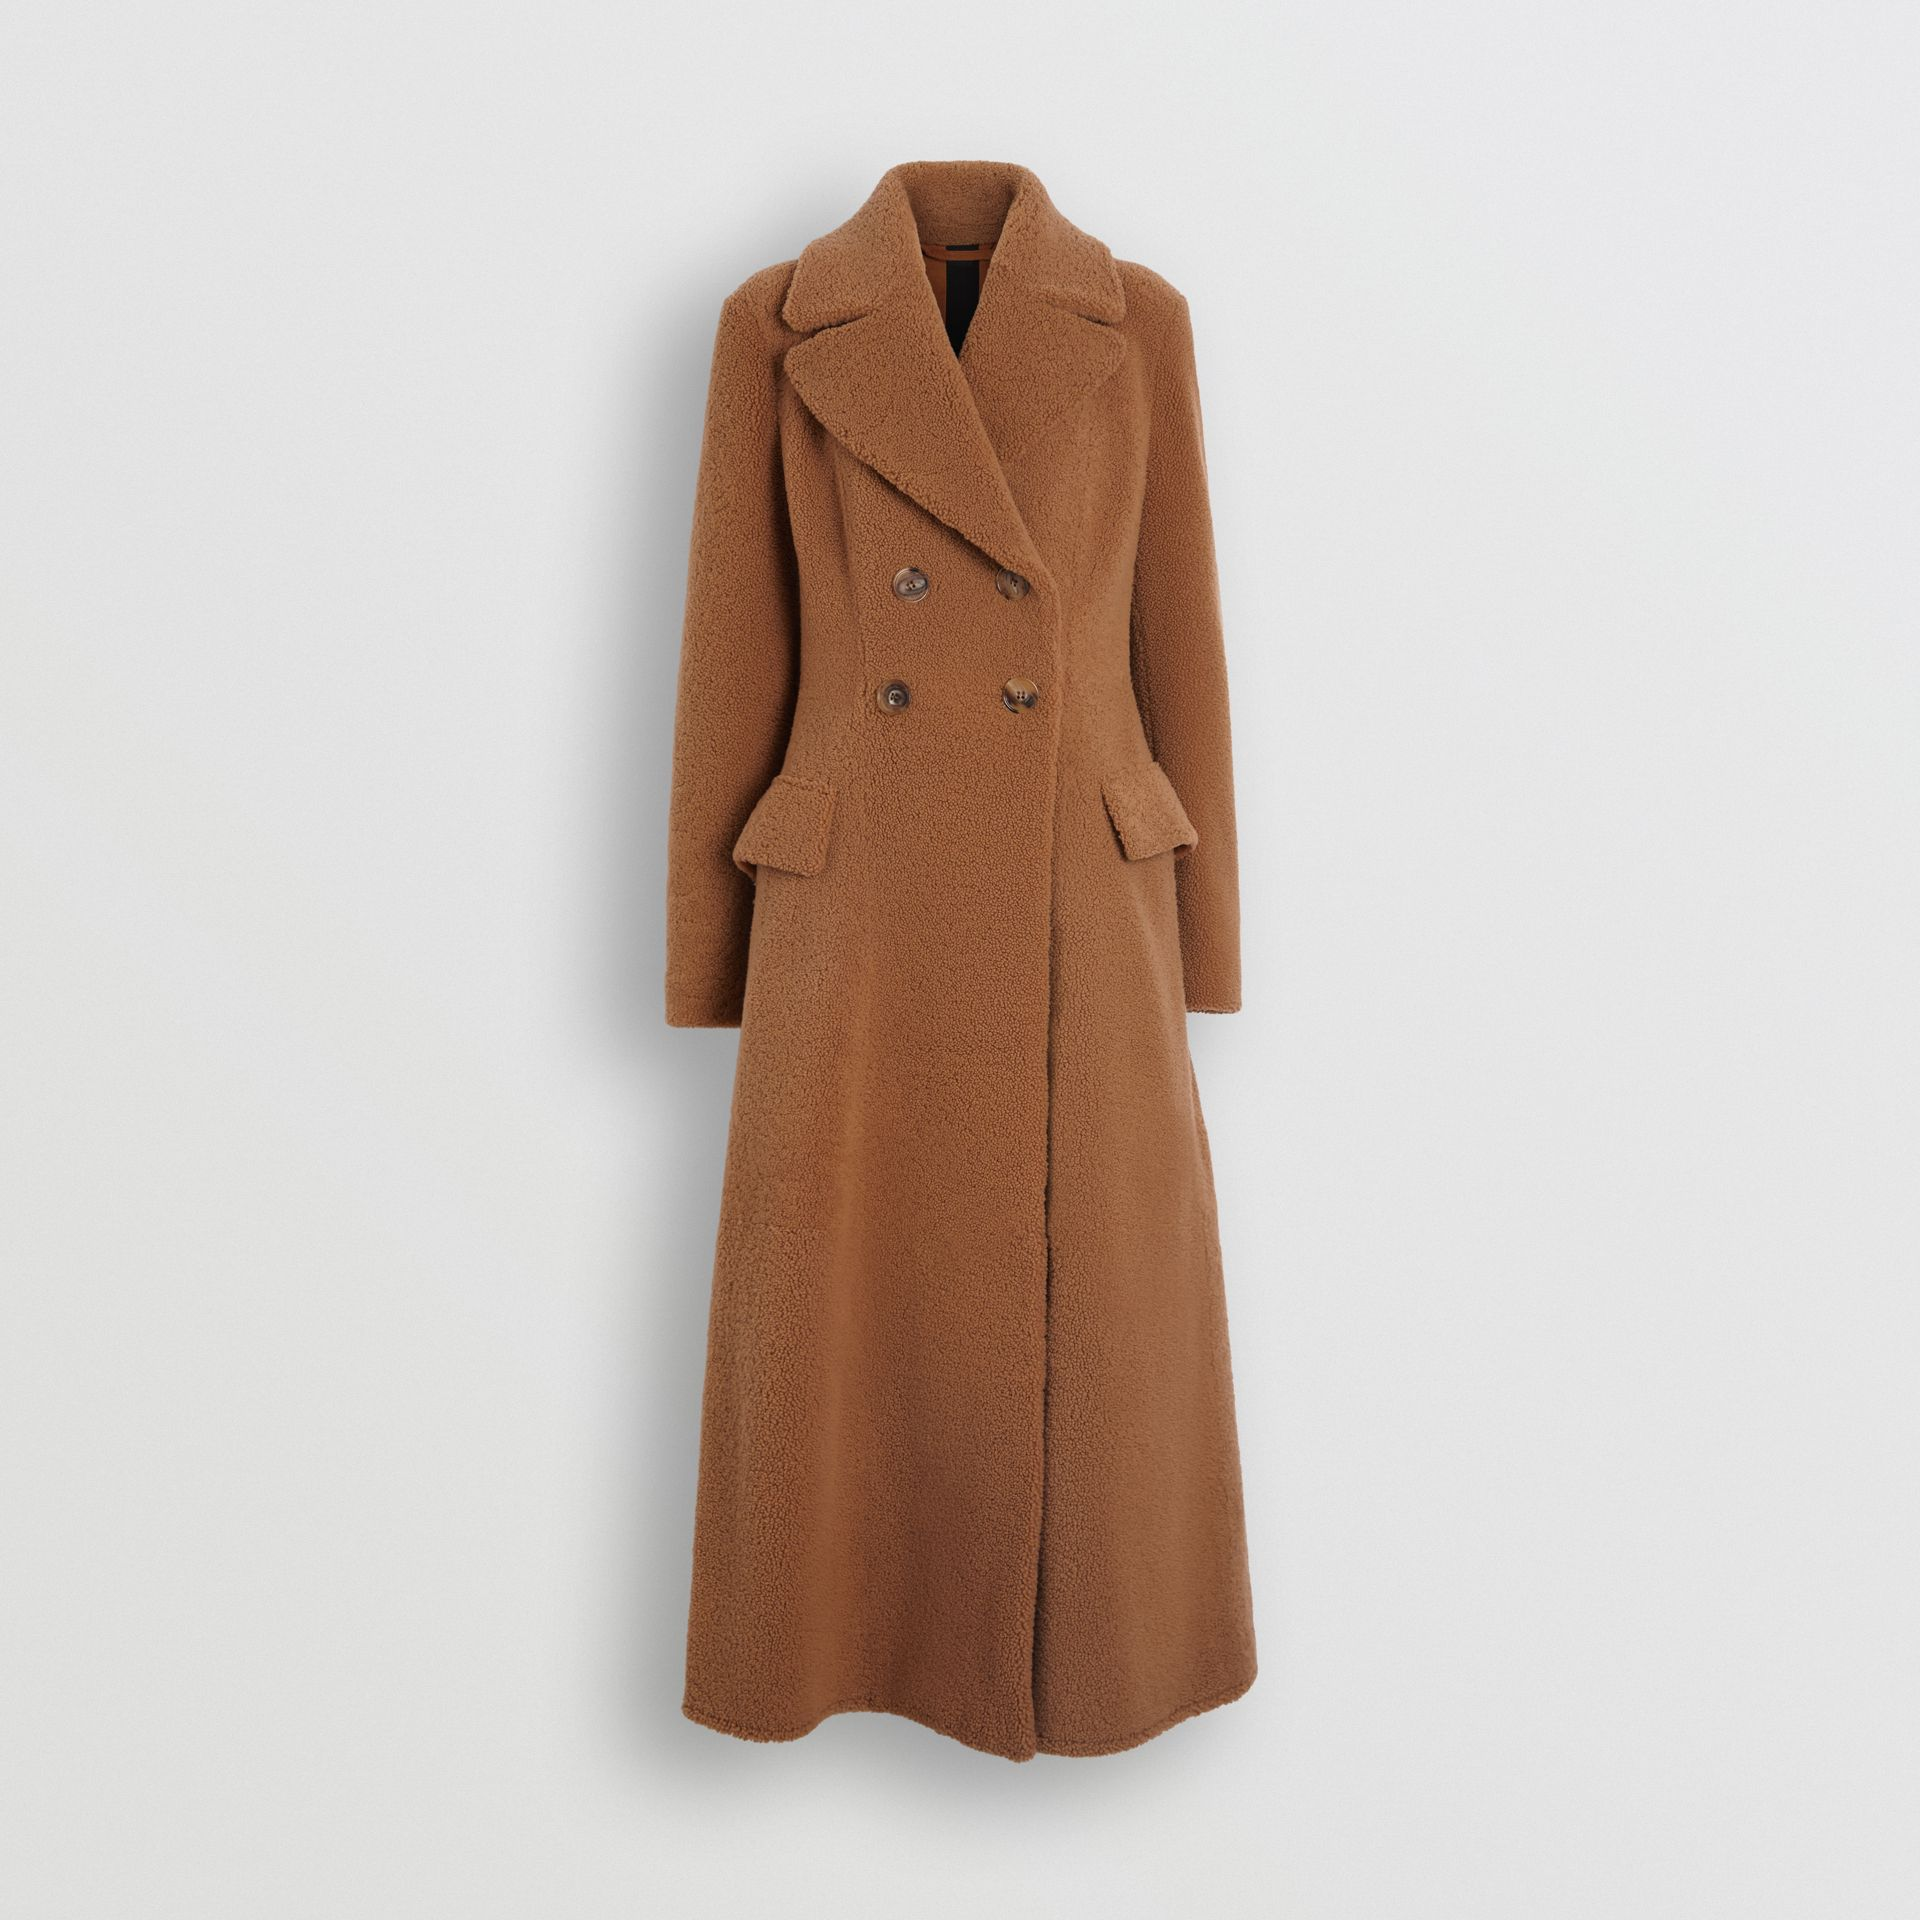 Shearling Tailored Coat in Caramel - Women | Burberry United States - gallery image 3